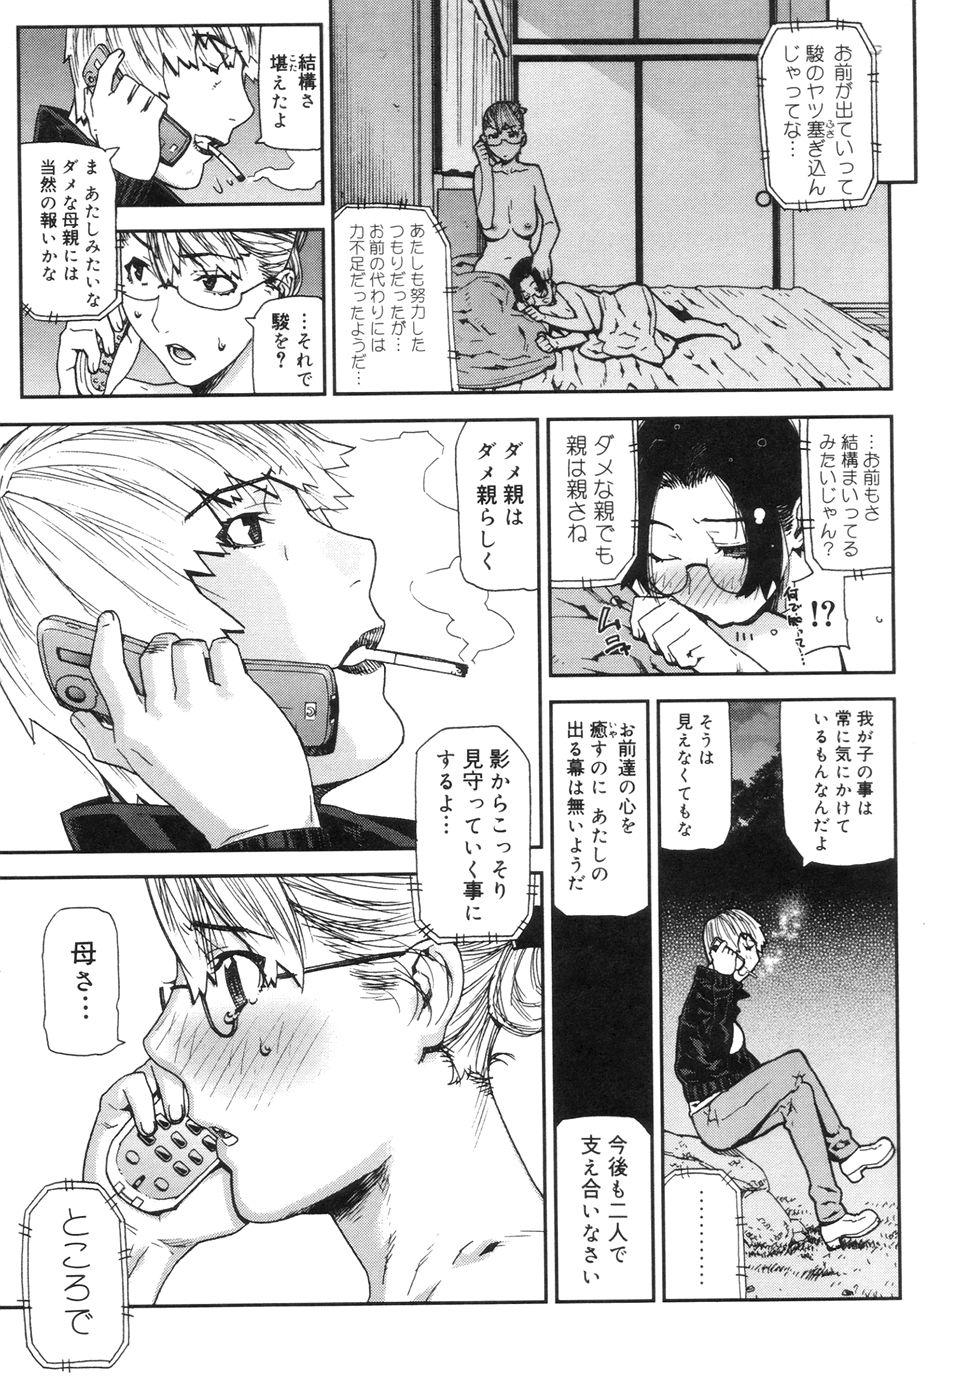 Onee-chan to issho 32